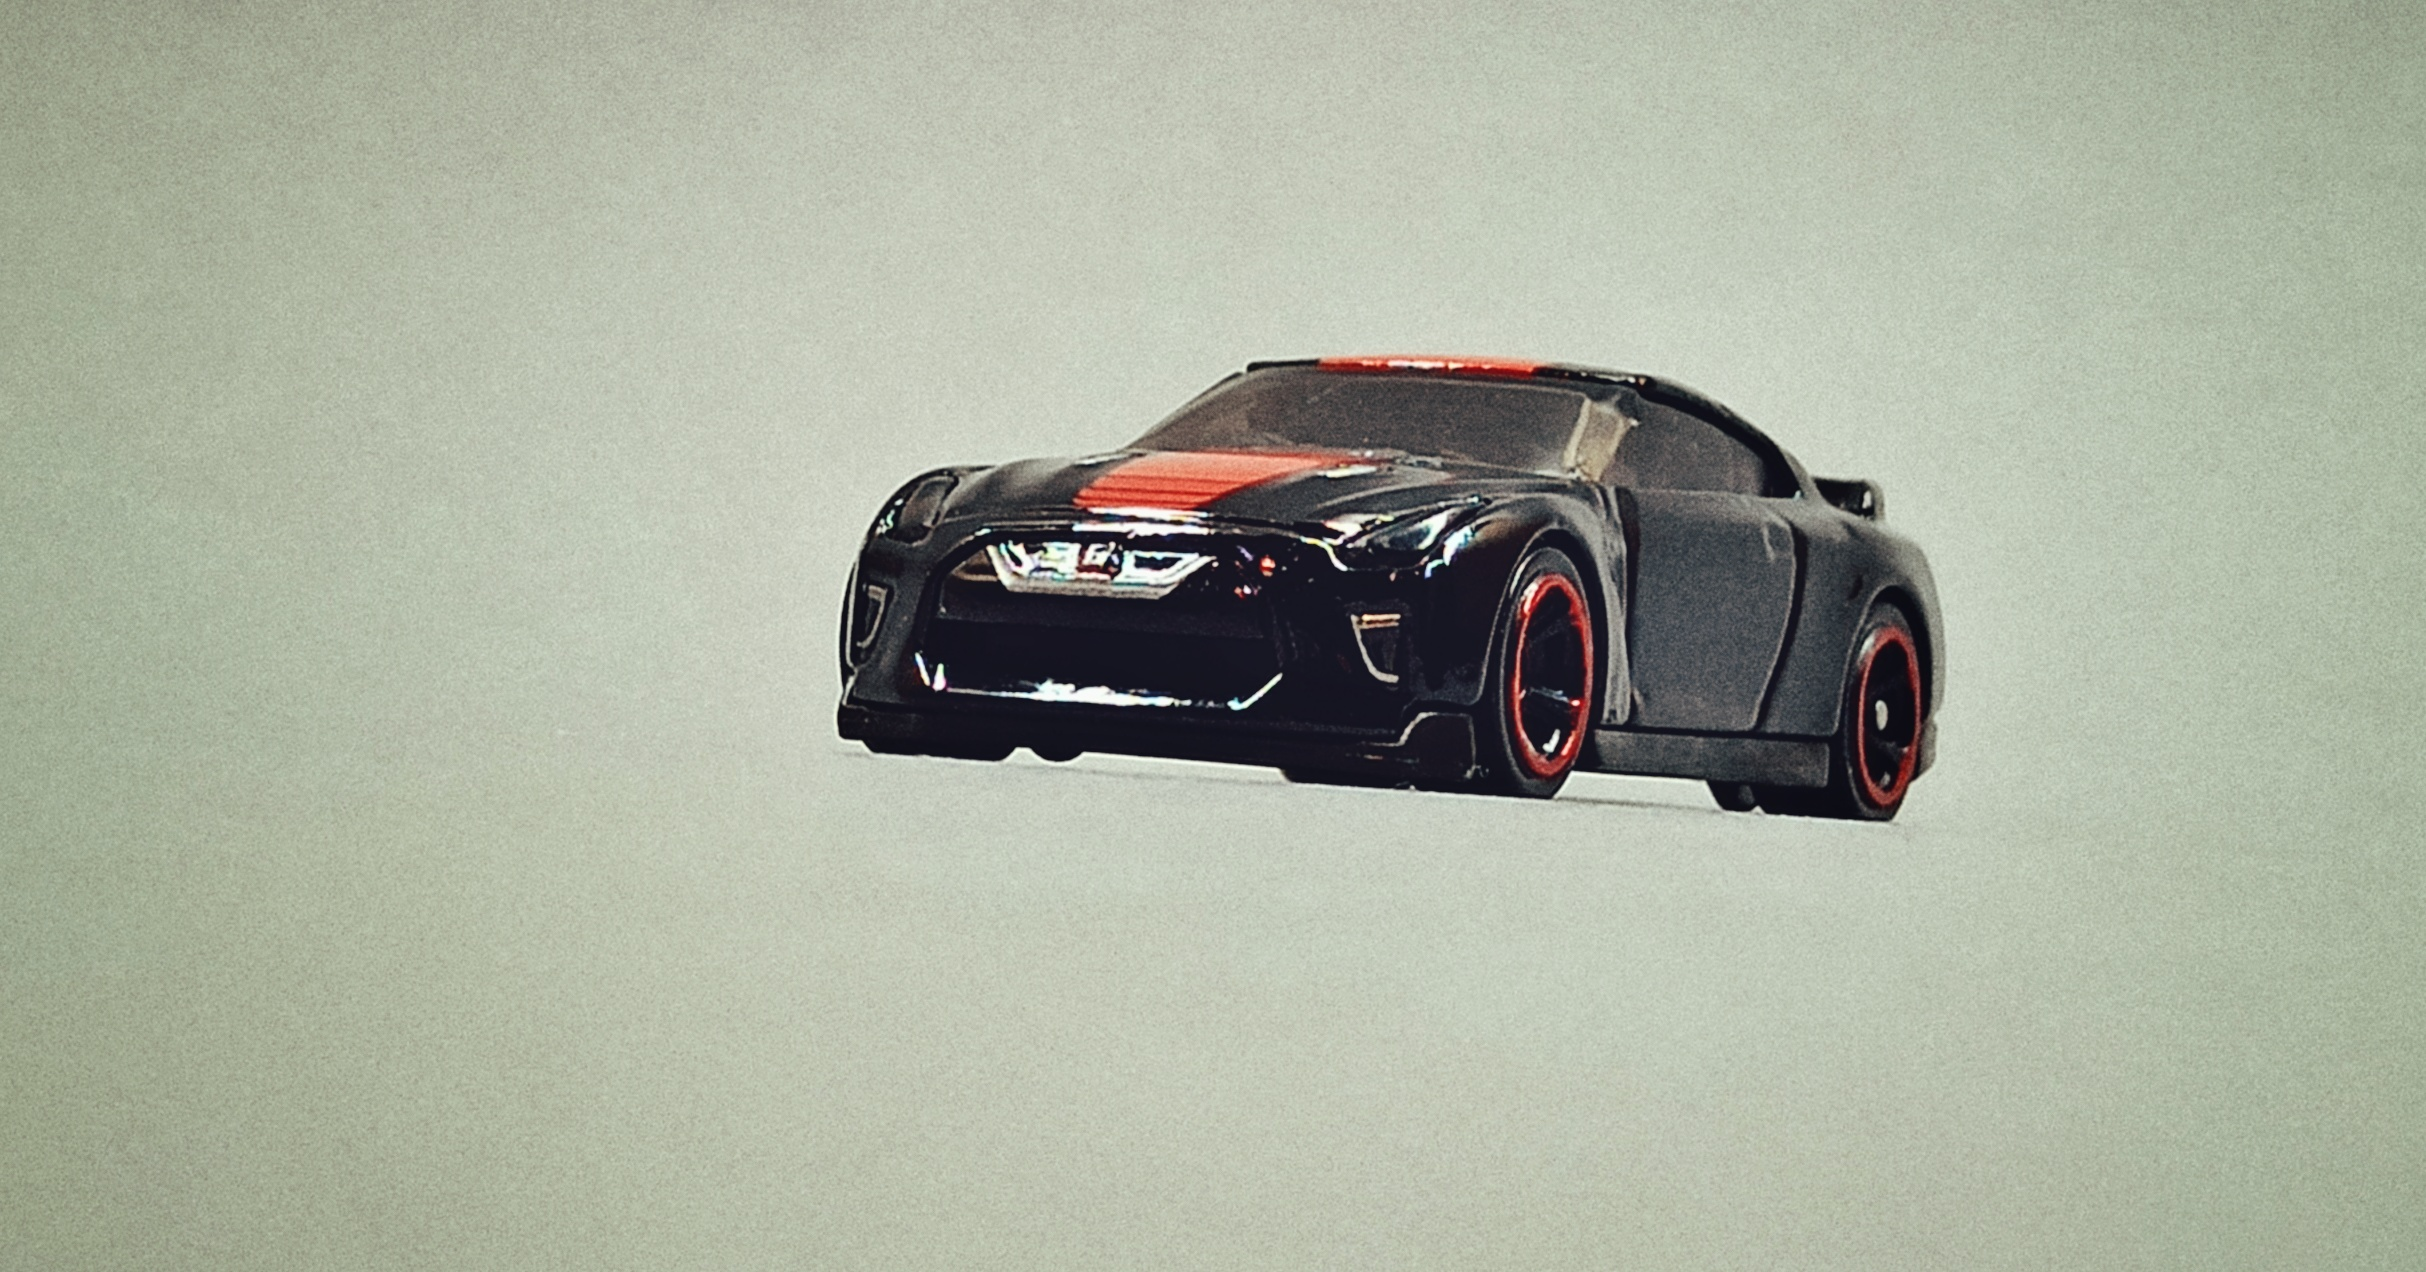 Hot Wheels '17 Nissan GT-R (R35) (GTD41) 2021 (79/250) Then and Now (2/10) black (Kroger Exclusive) front angle